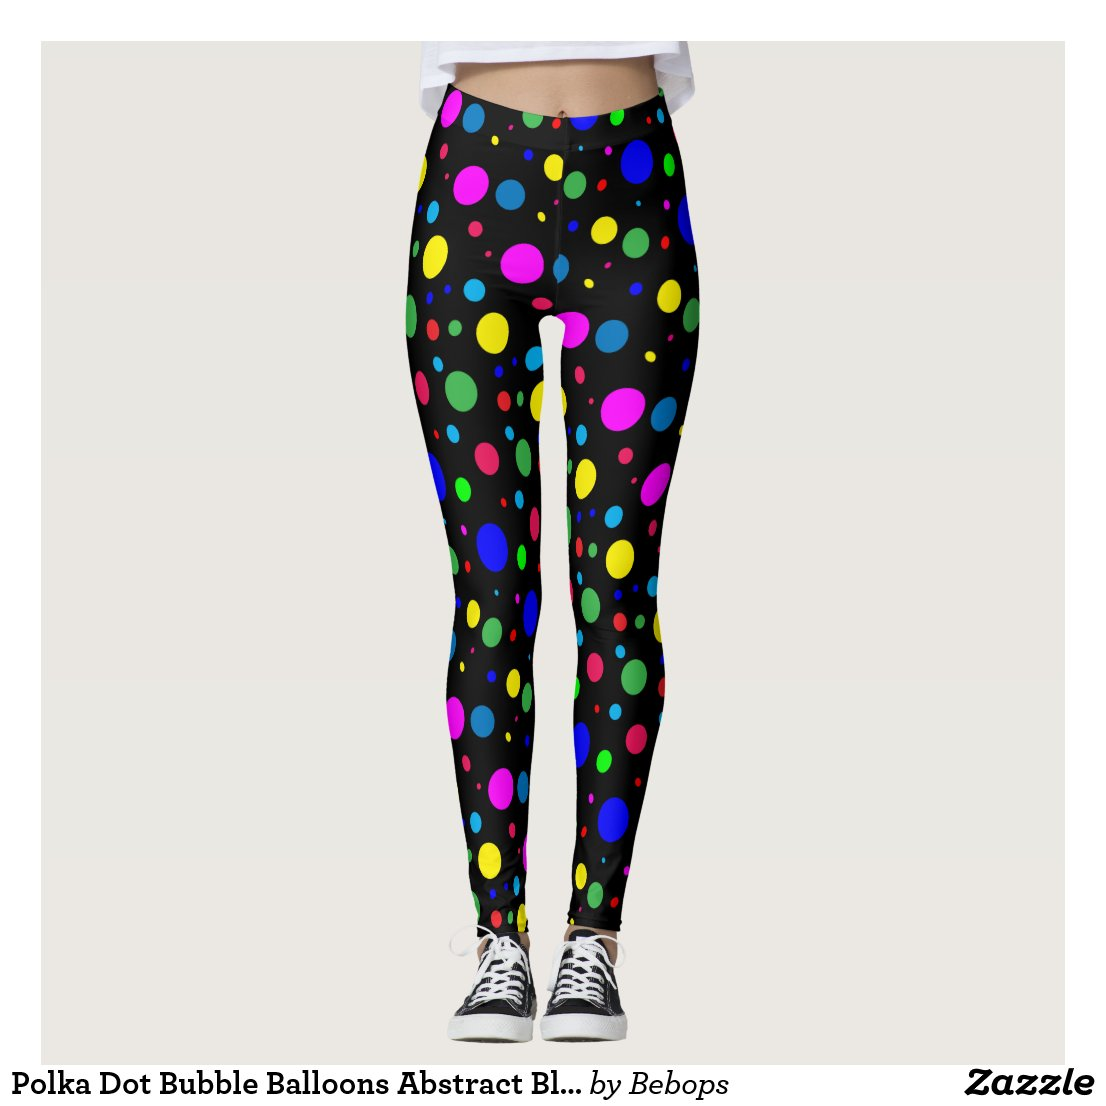 Polka Dot Bubble Balloons Abstract Black Leggings